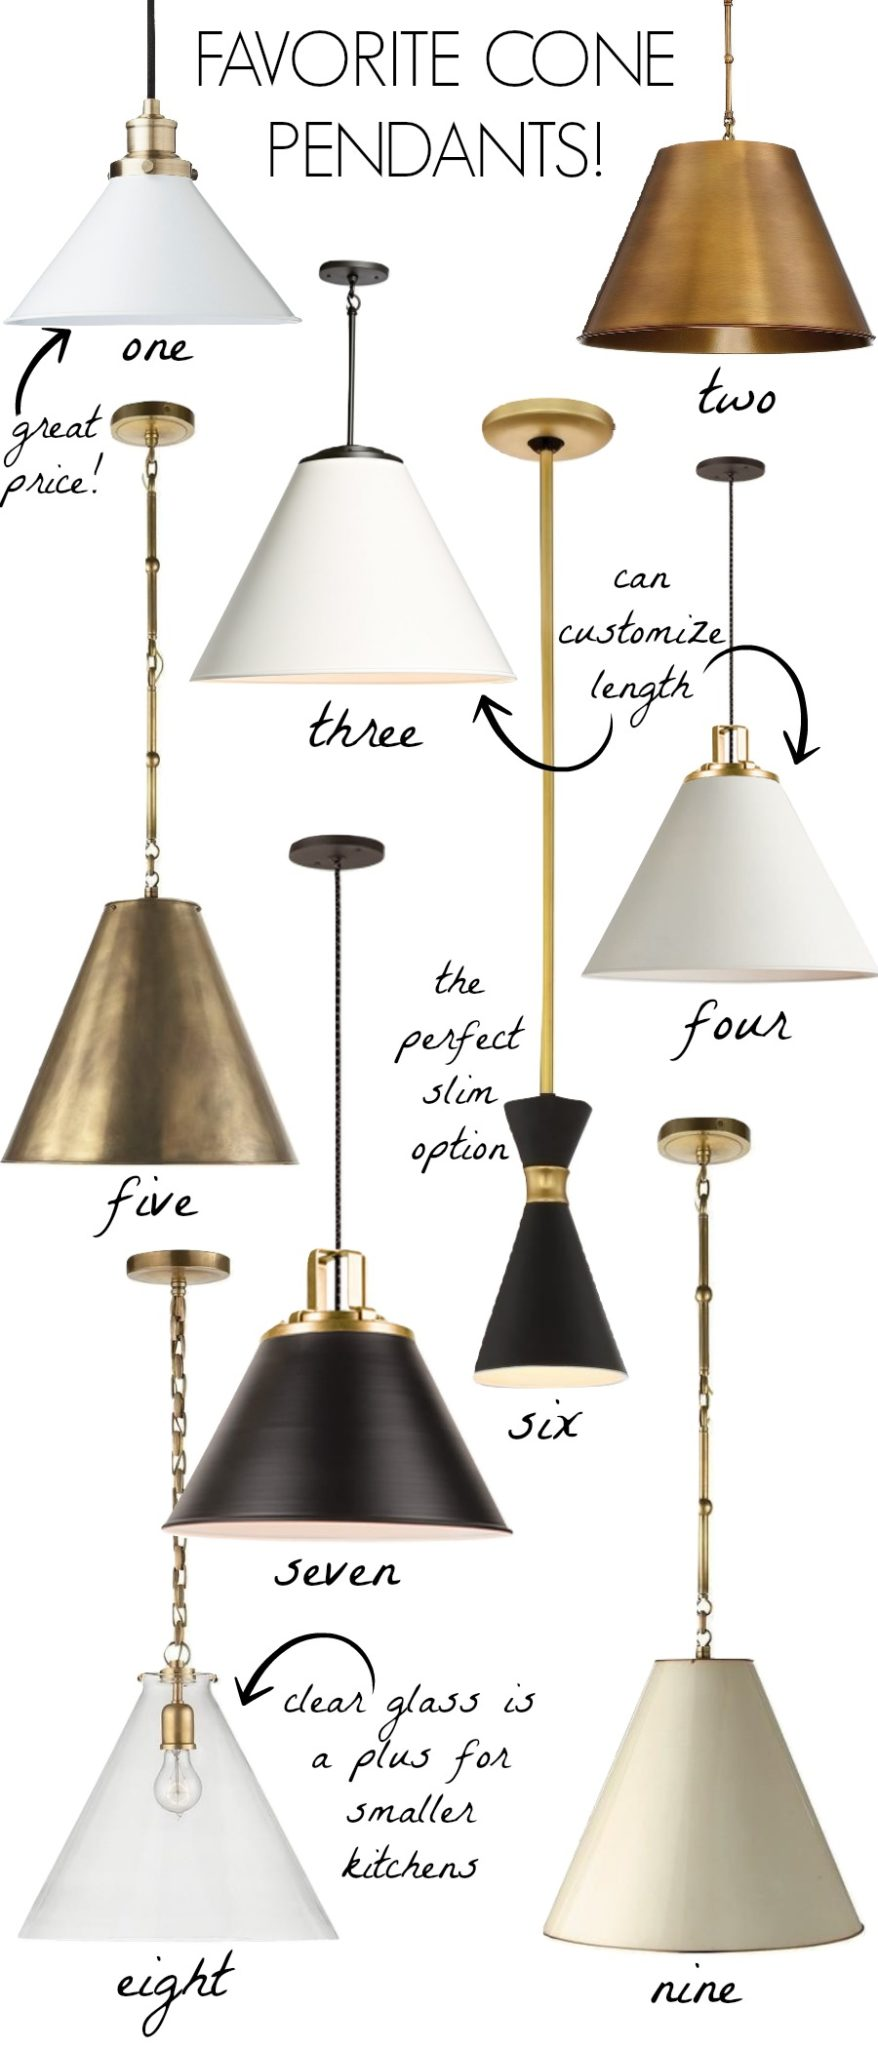 Love all of these cone pendant lights - love them over kitchen islands! Black, white, or brass and skinny or wide - so many options!!